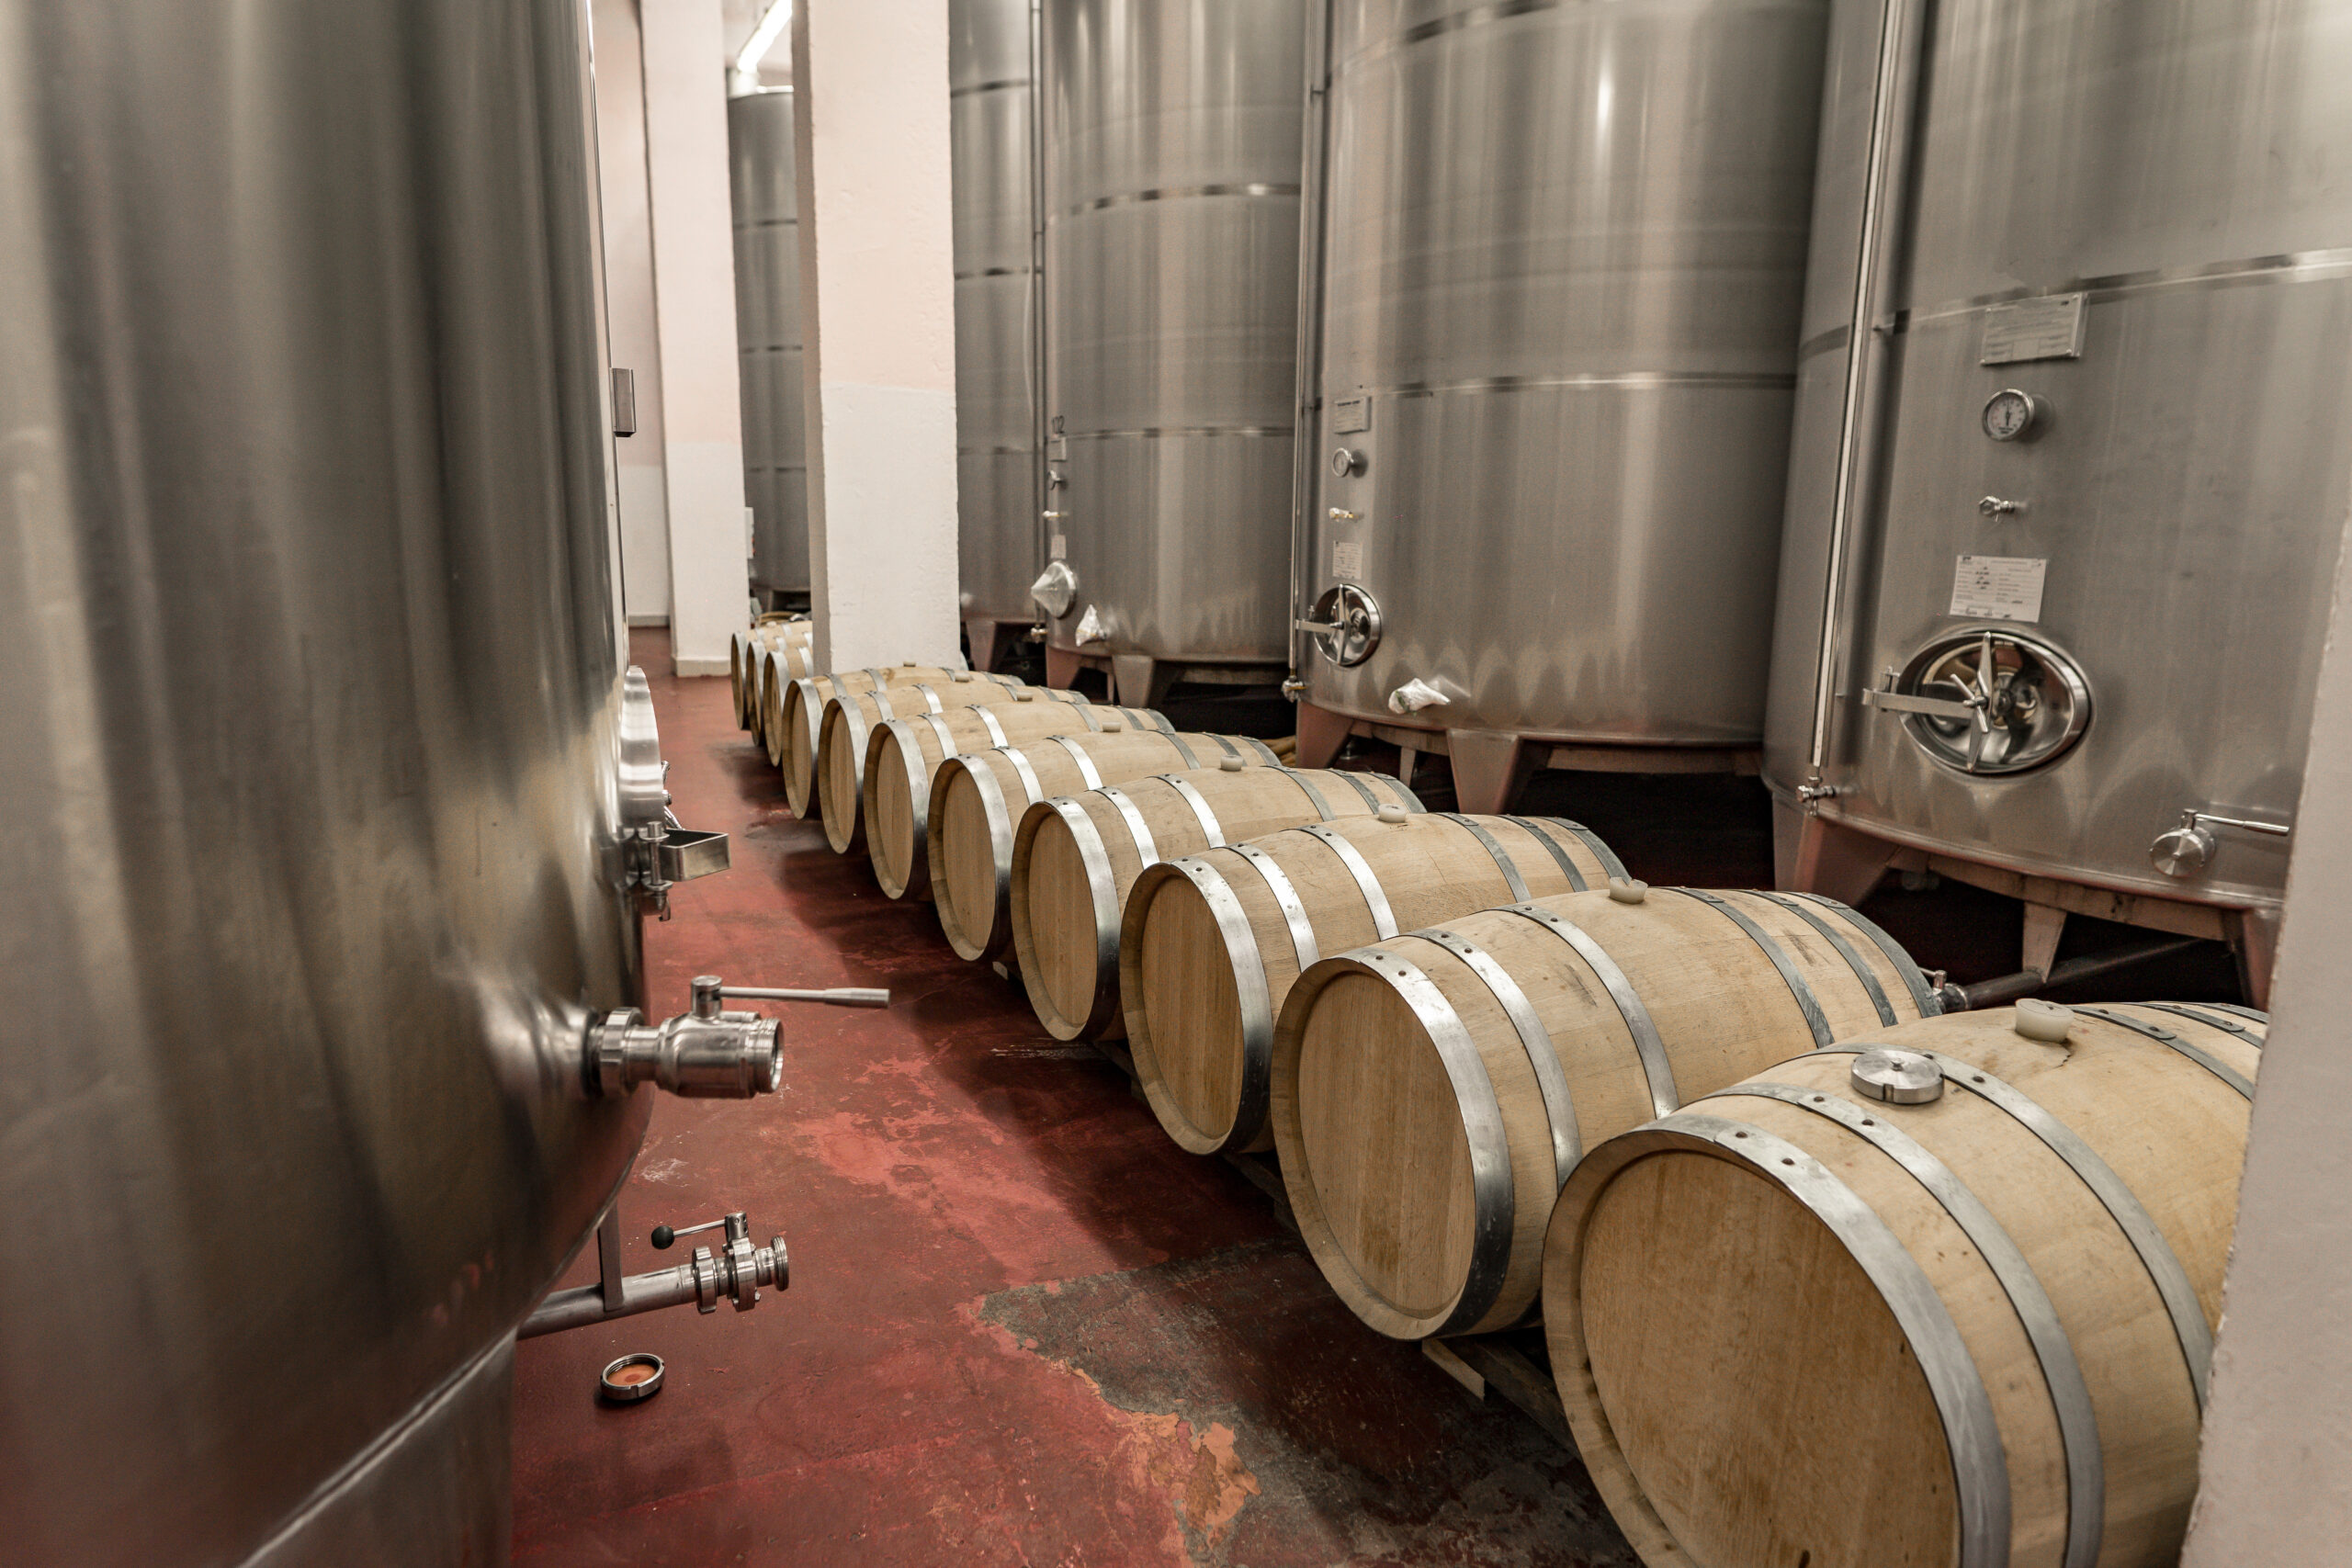 Interior of a winery making wine in oak barrels and aluminium tanks